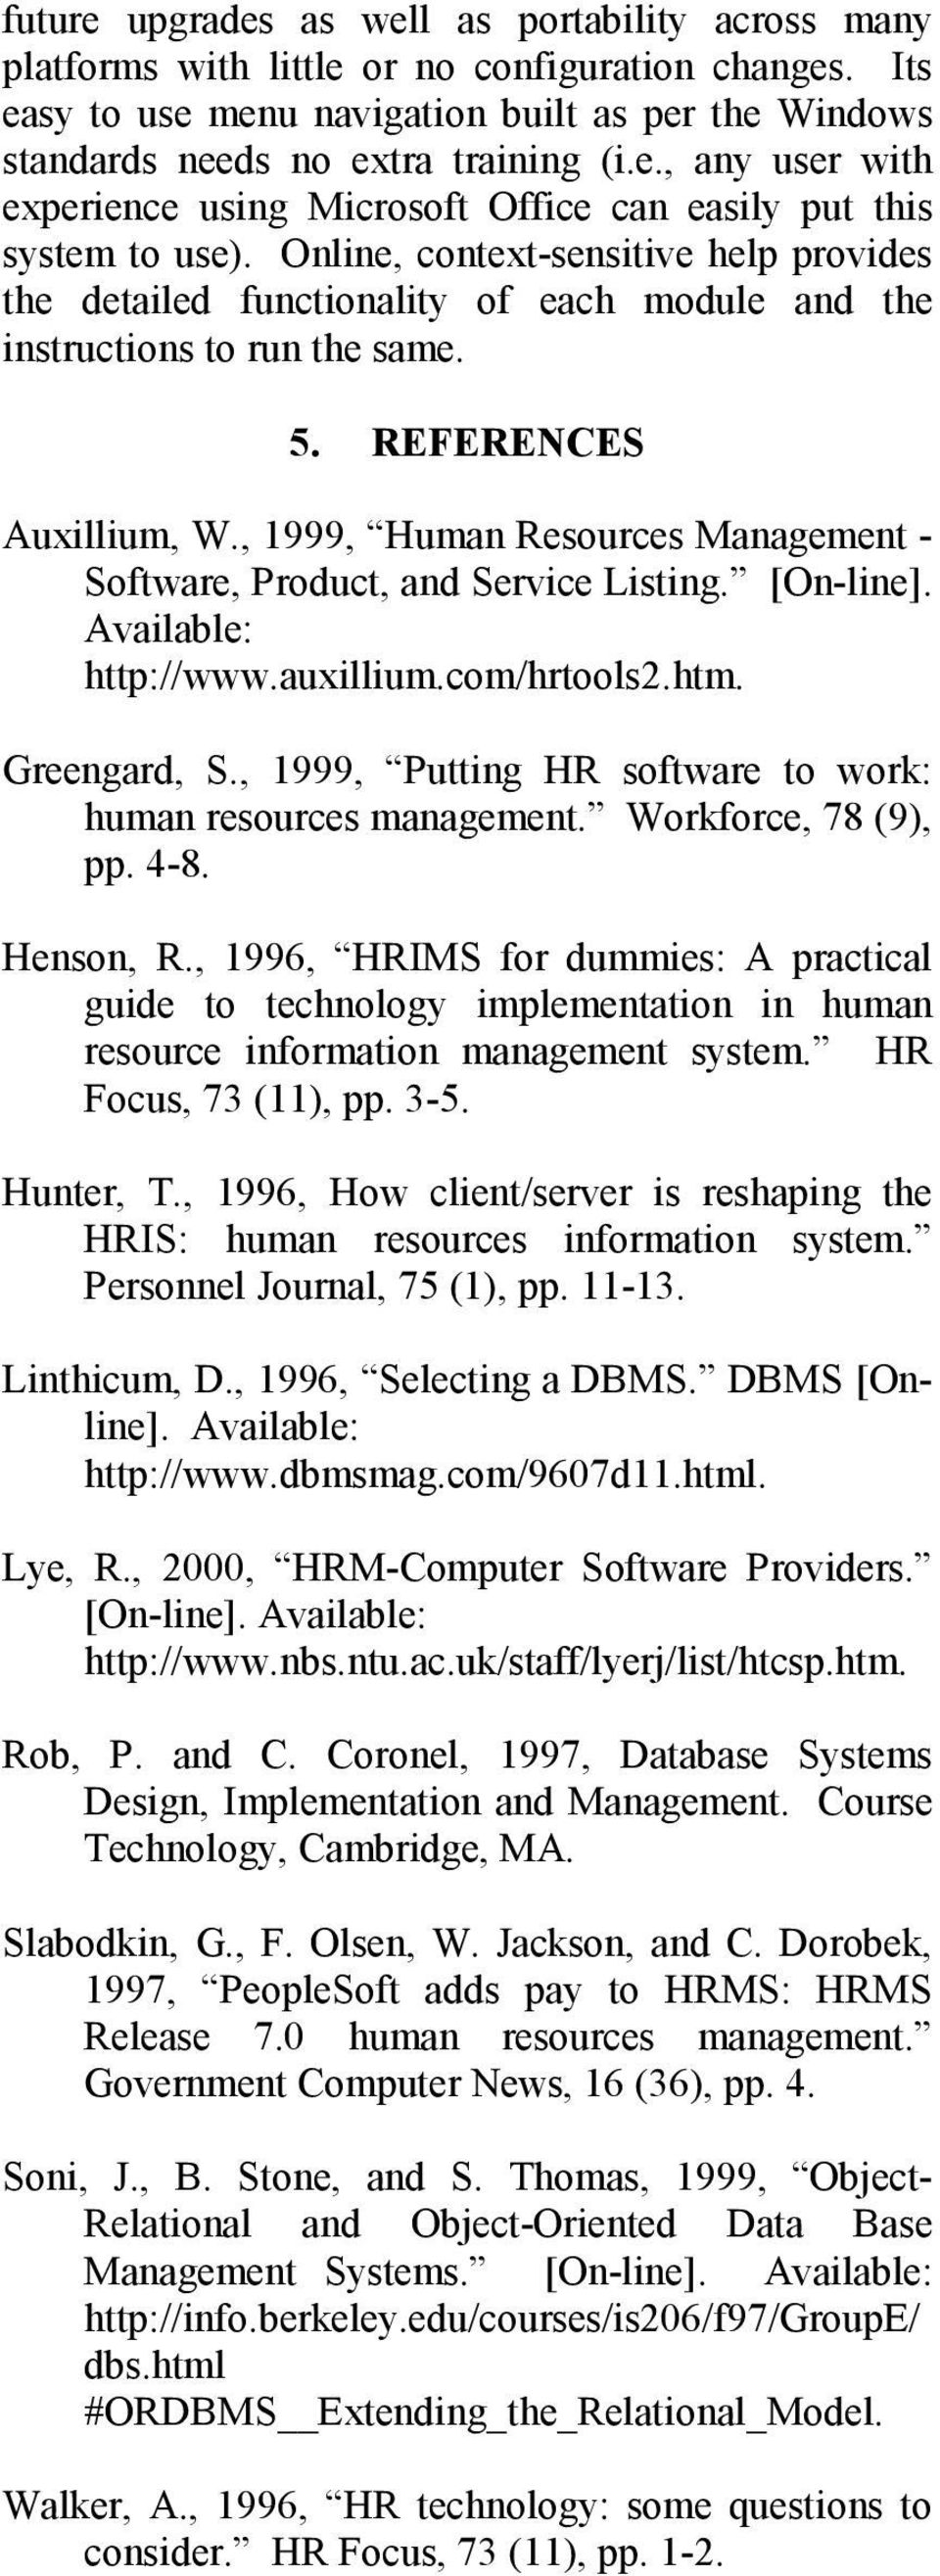 Development Of Essential Features For A Human Resource Management System Pdf Free Download